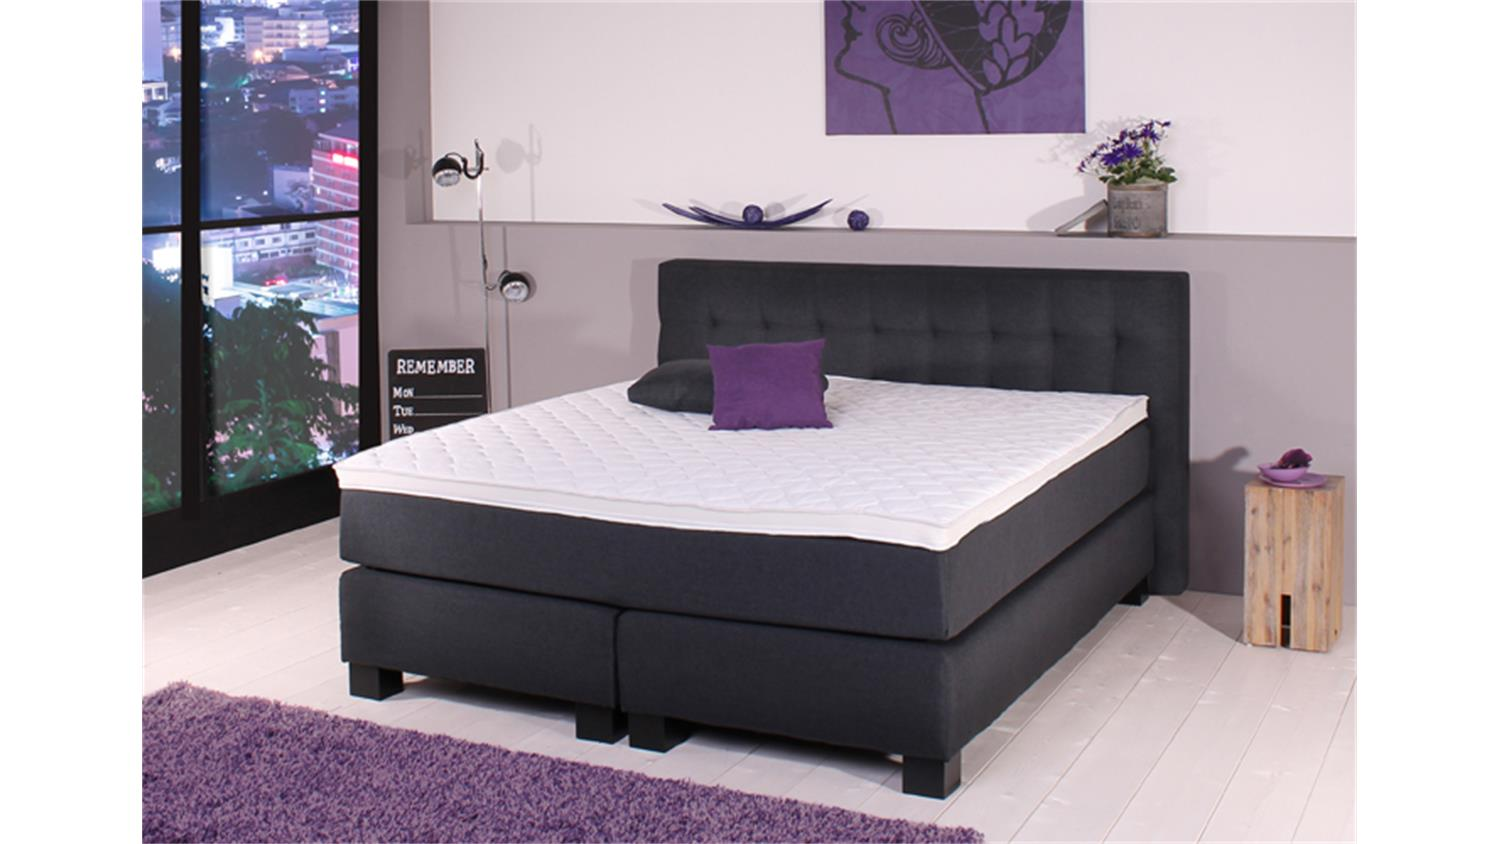 boxspringbett bx650 anthrazit 7 zonen tfk matratze 180x200cm. Black Bedroom Furniture Sets. Home Design Ideas